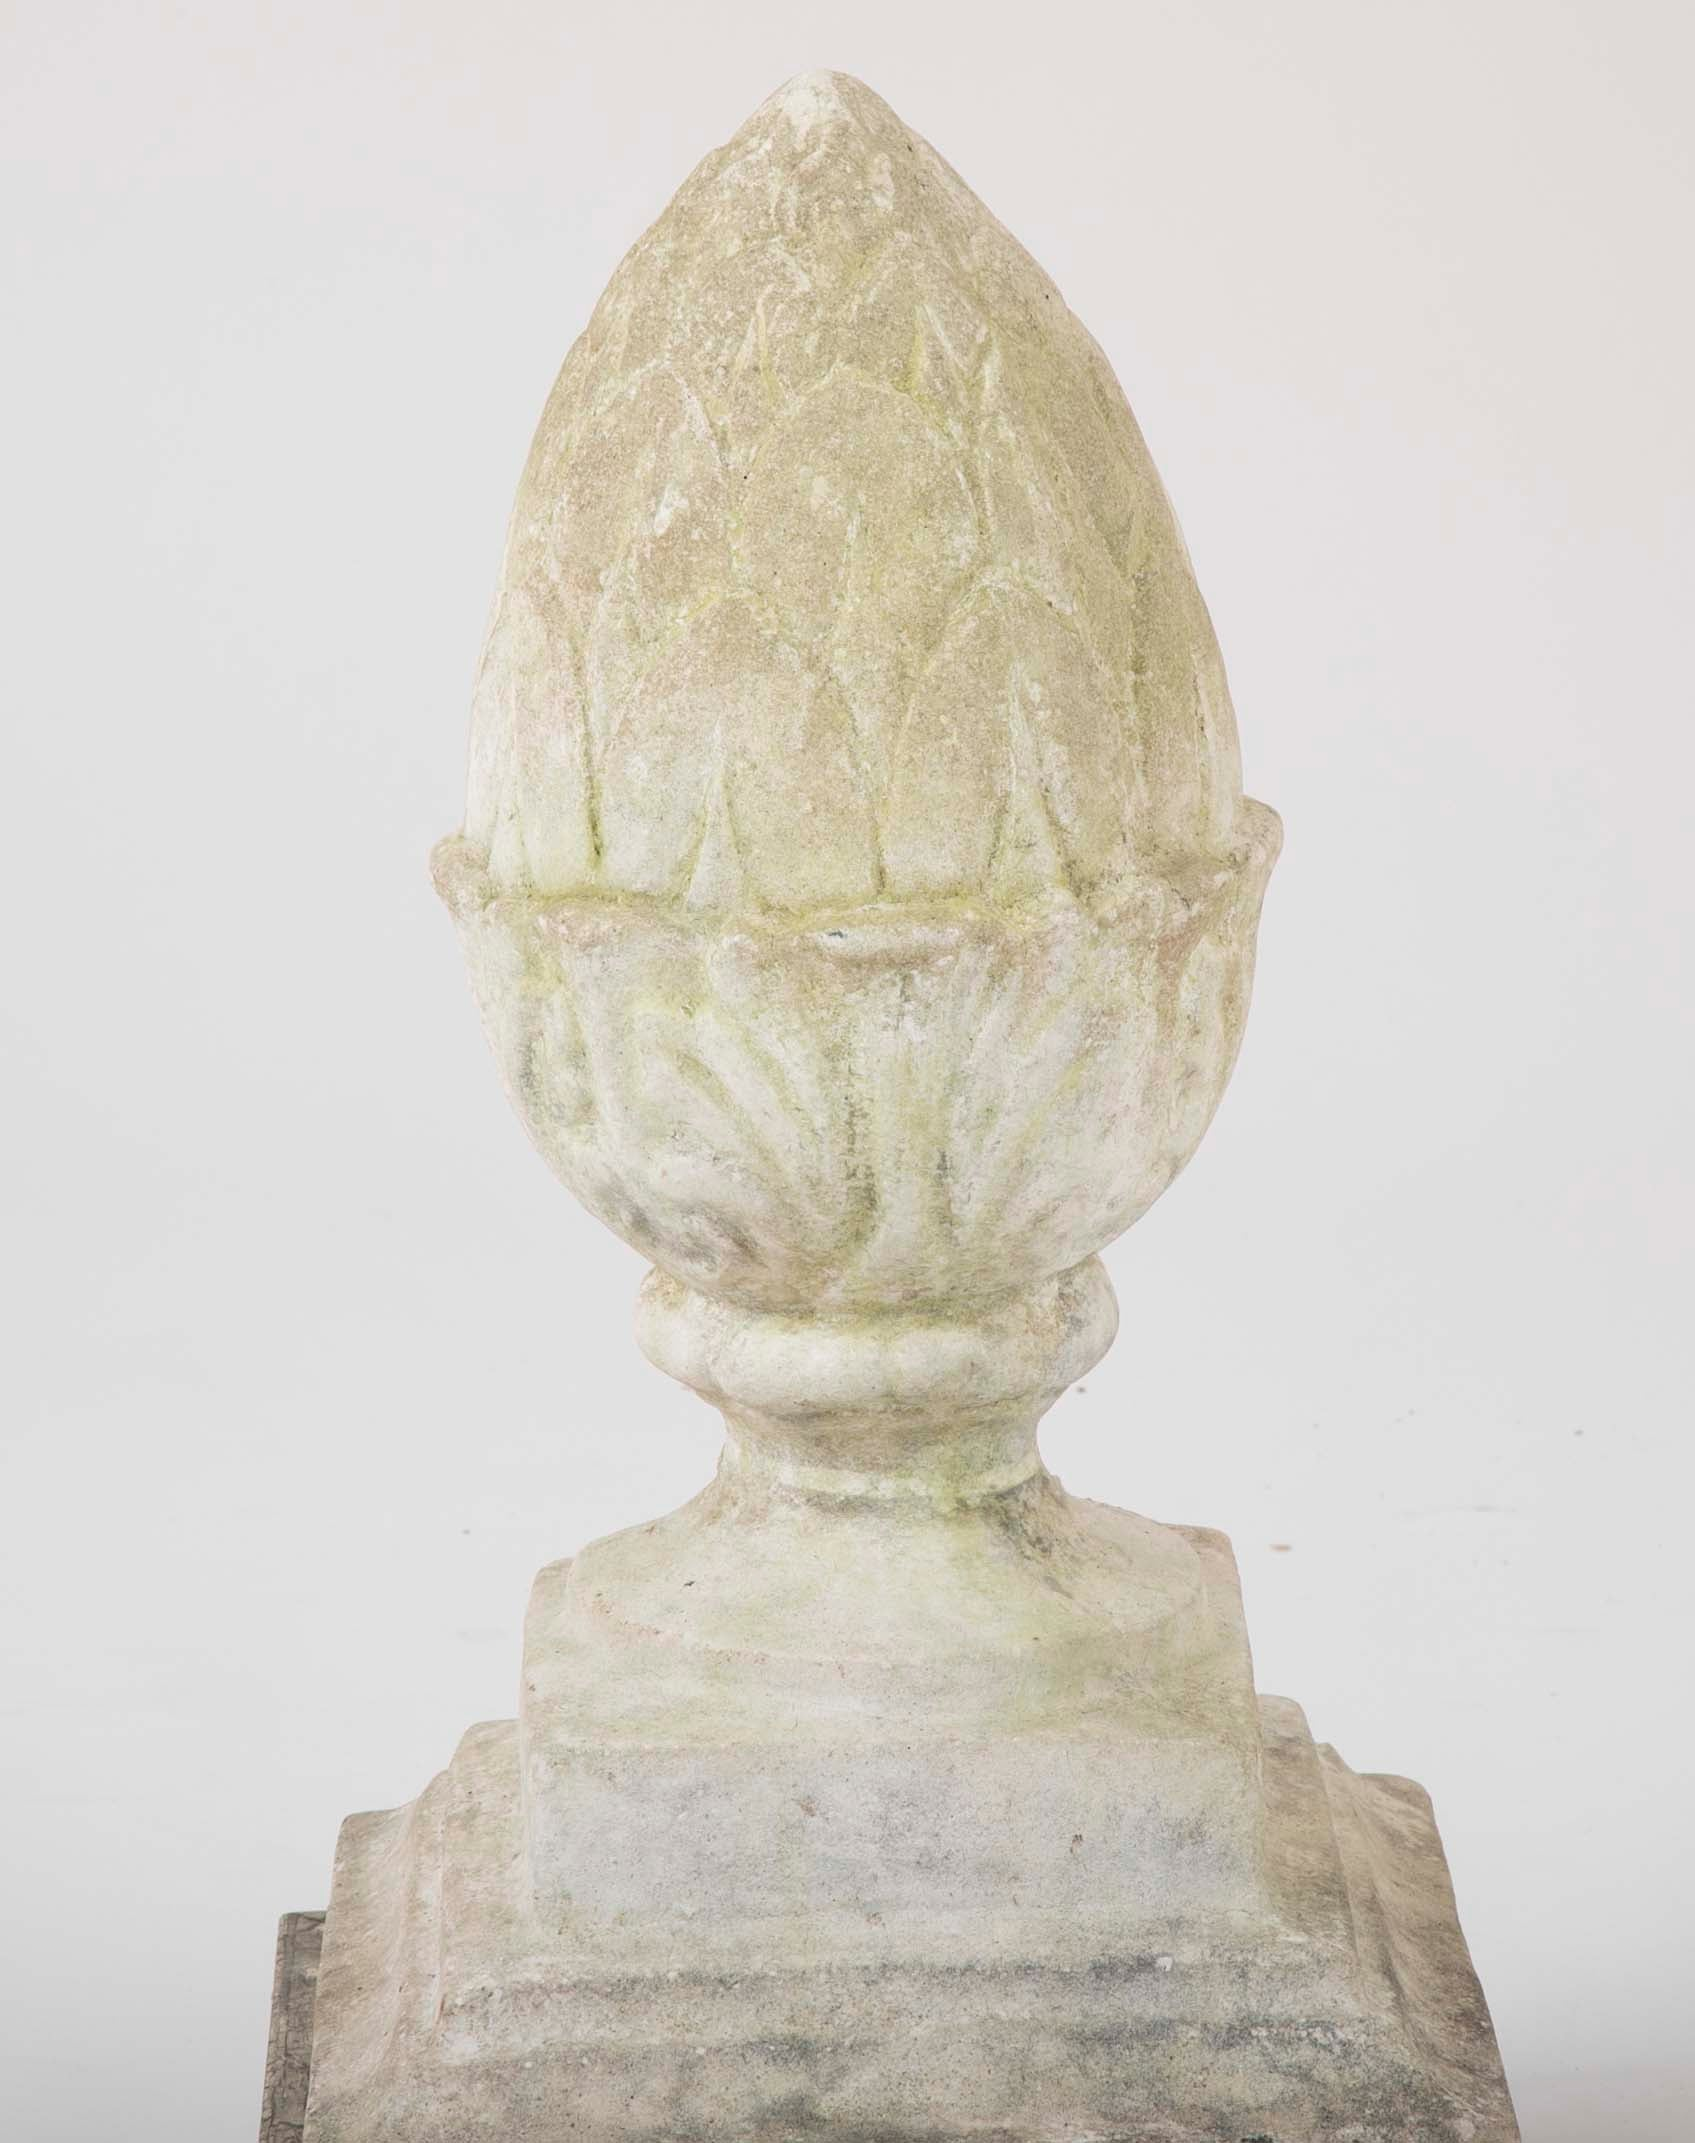 Vintage Stone Pineapple from Top of Stove